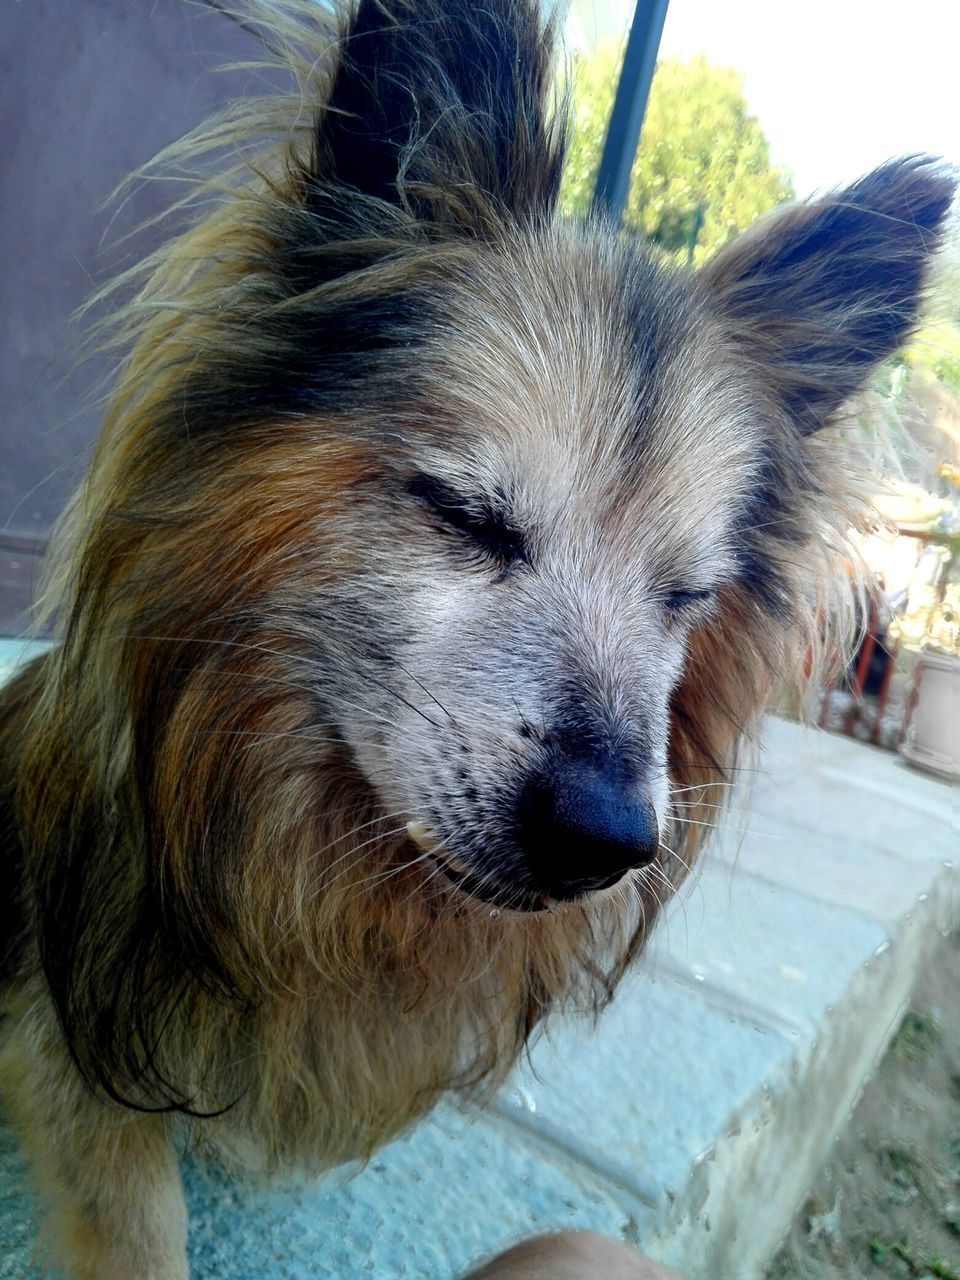 dog, one animal, animal themes, pets, domestic animals, mammal, close-up, day, outdoors, no people, portrait